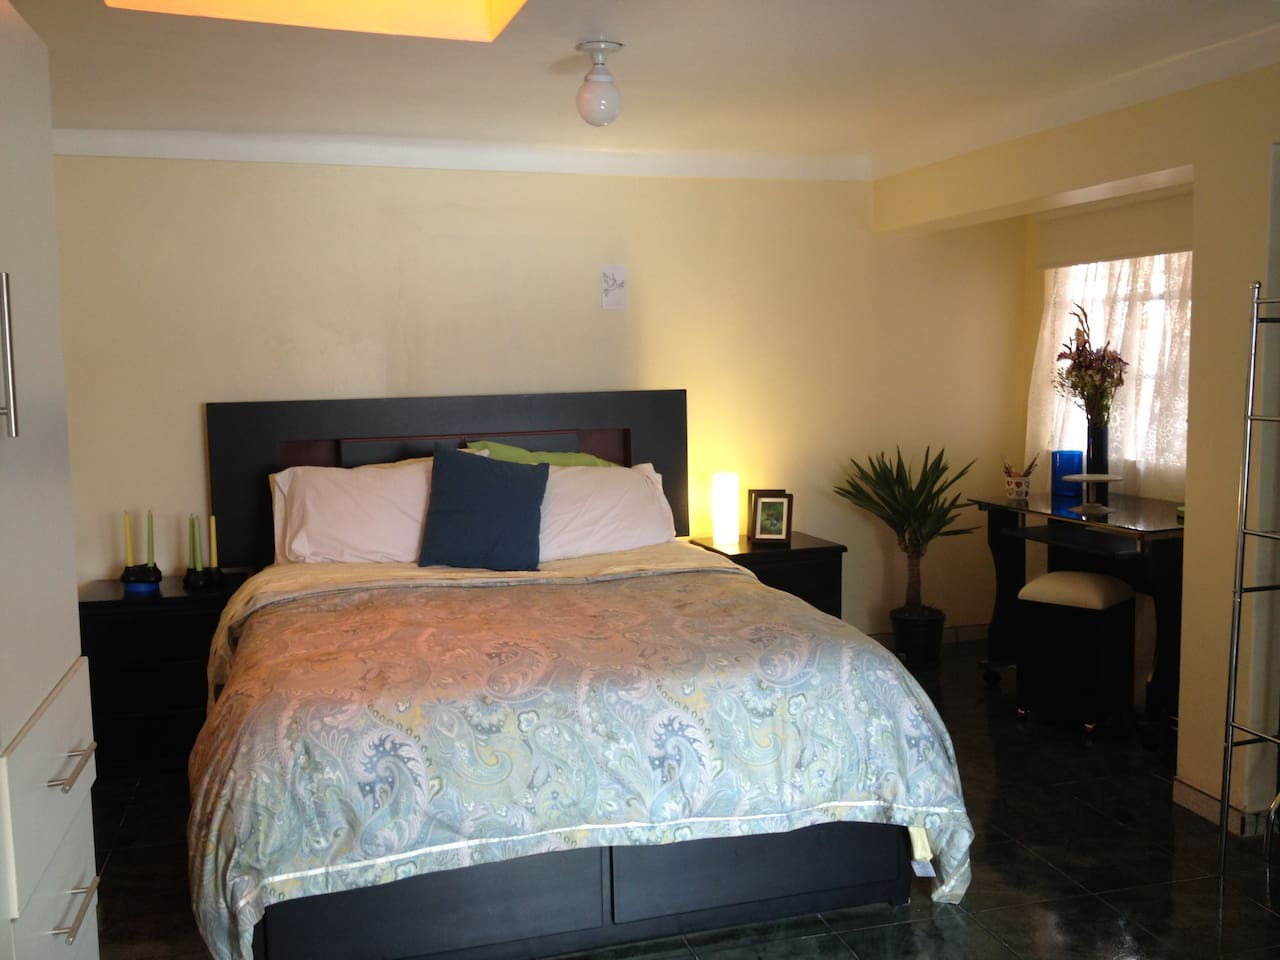 Bedroom with skylights, queen bed, plenty of storage and space